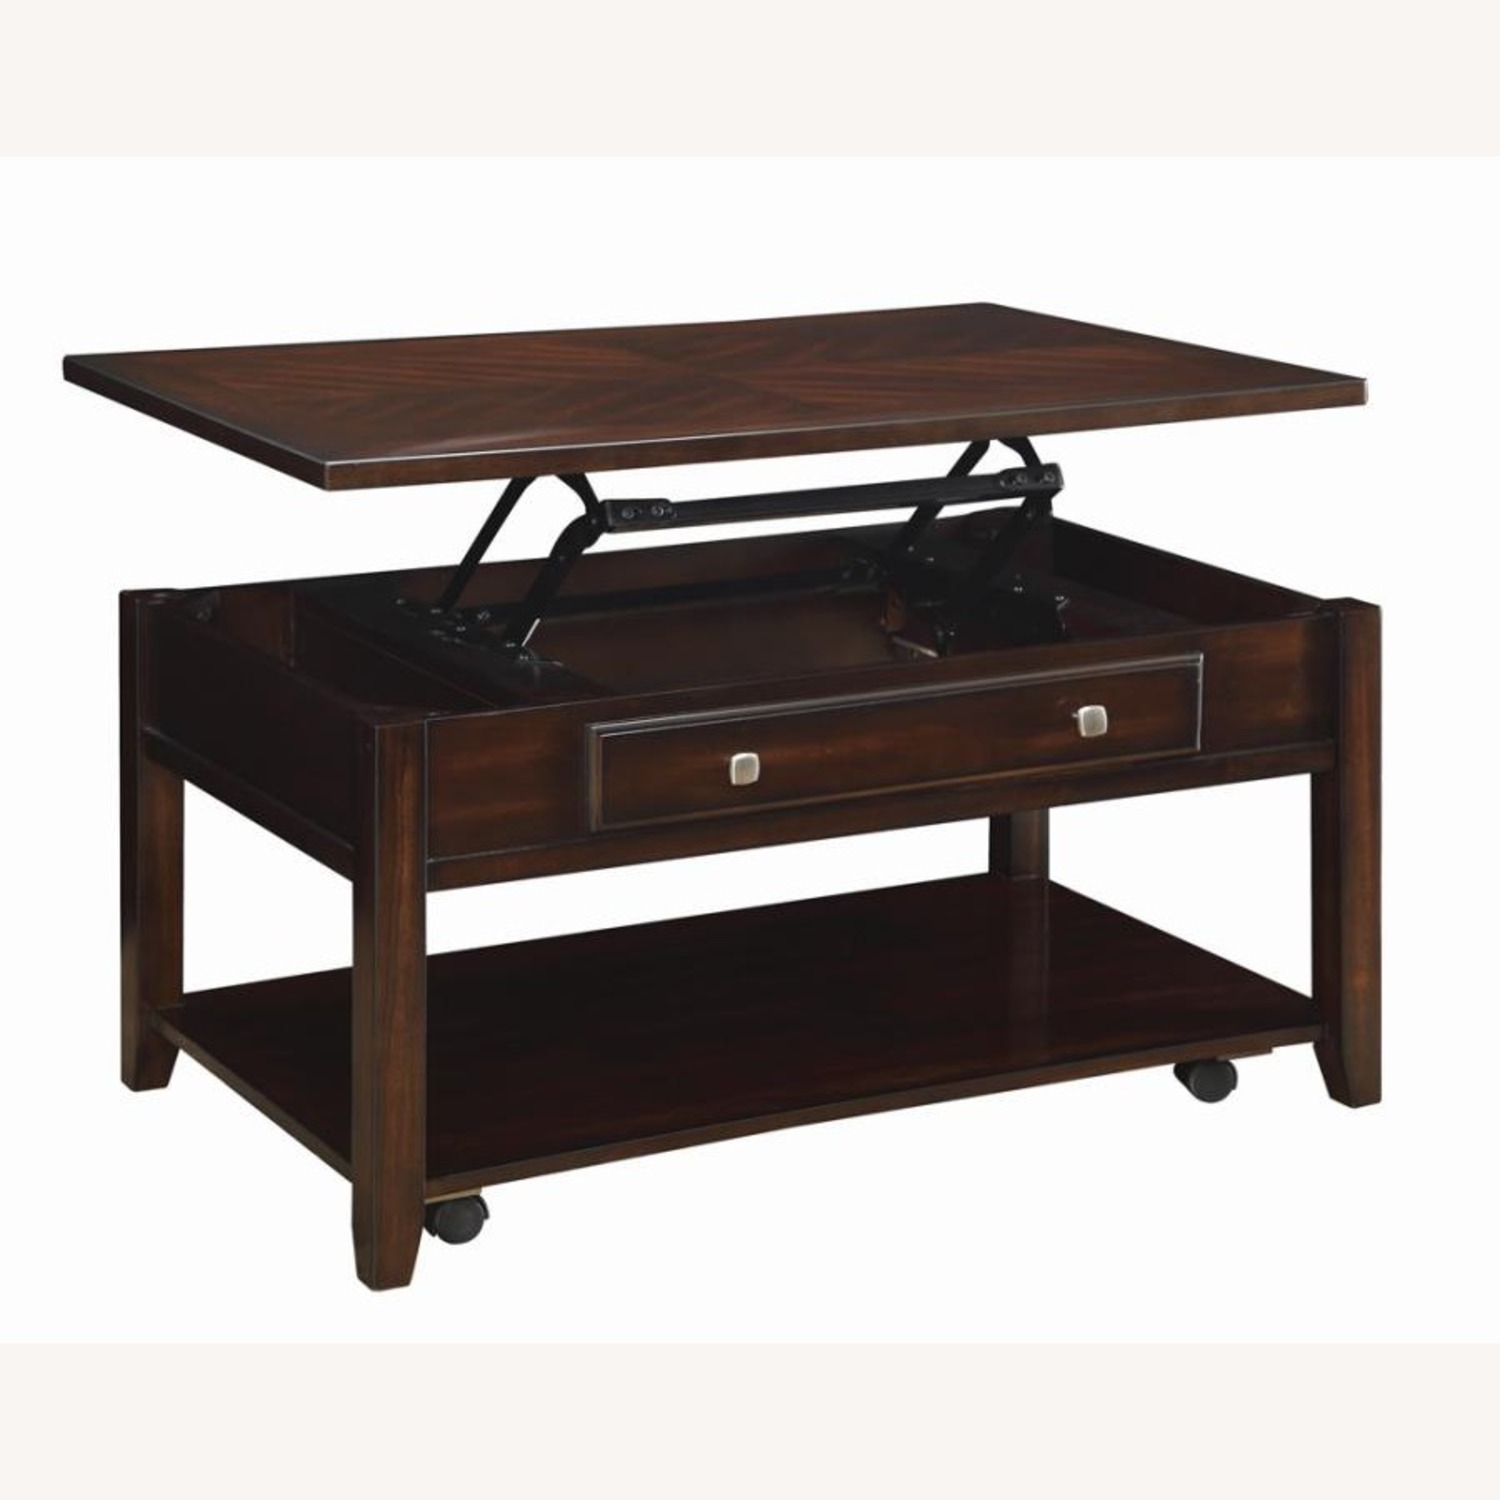 Lift Top Coffee Table In Walnut Finish W/ Shelves - image-1